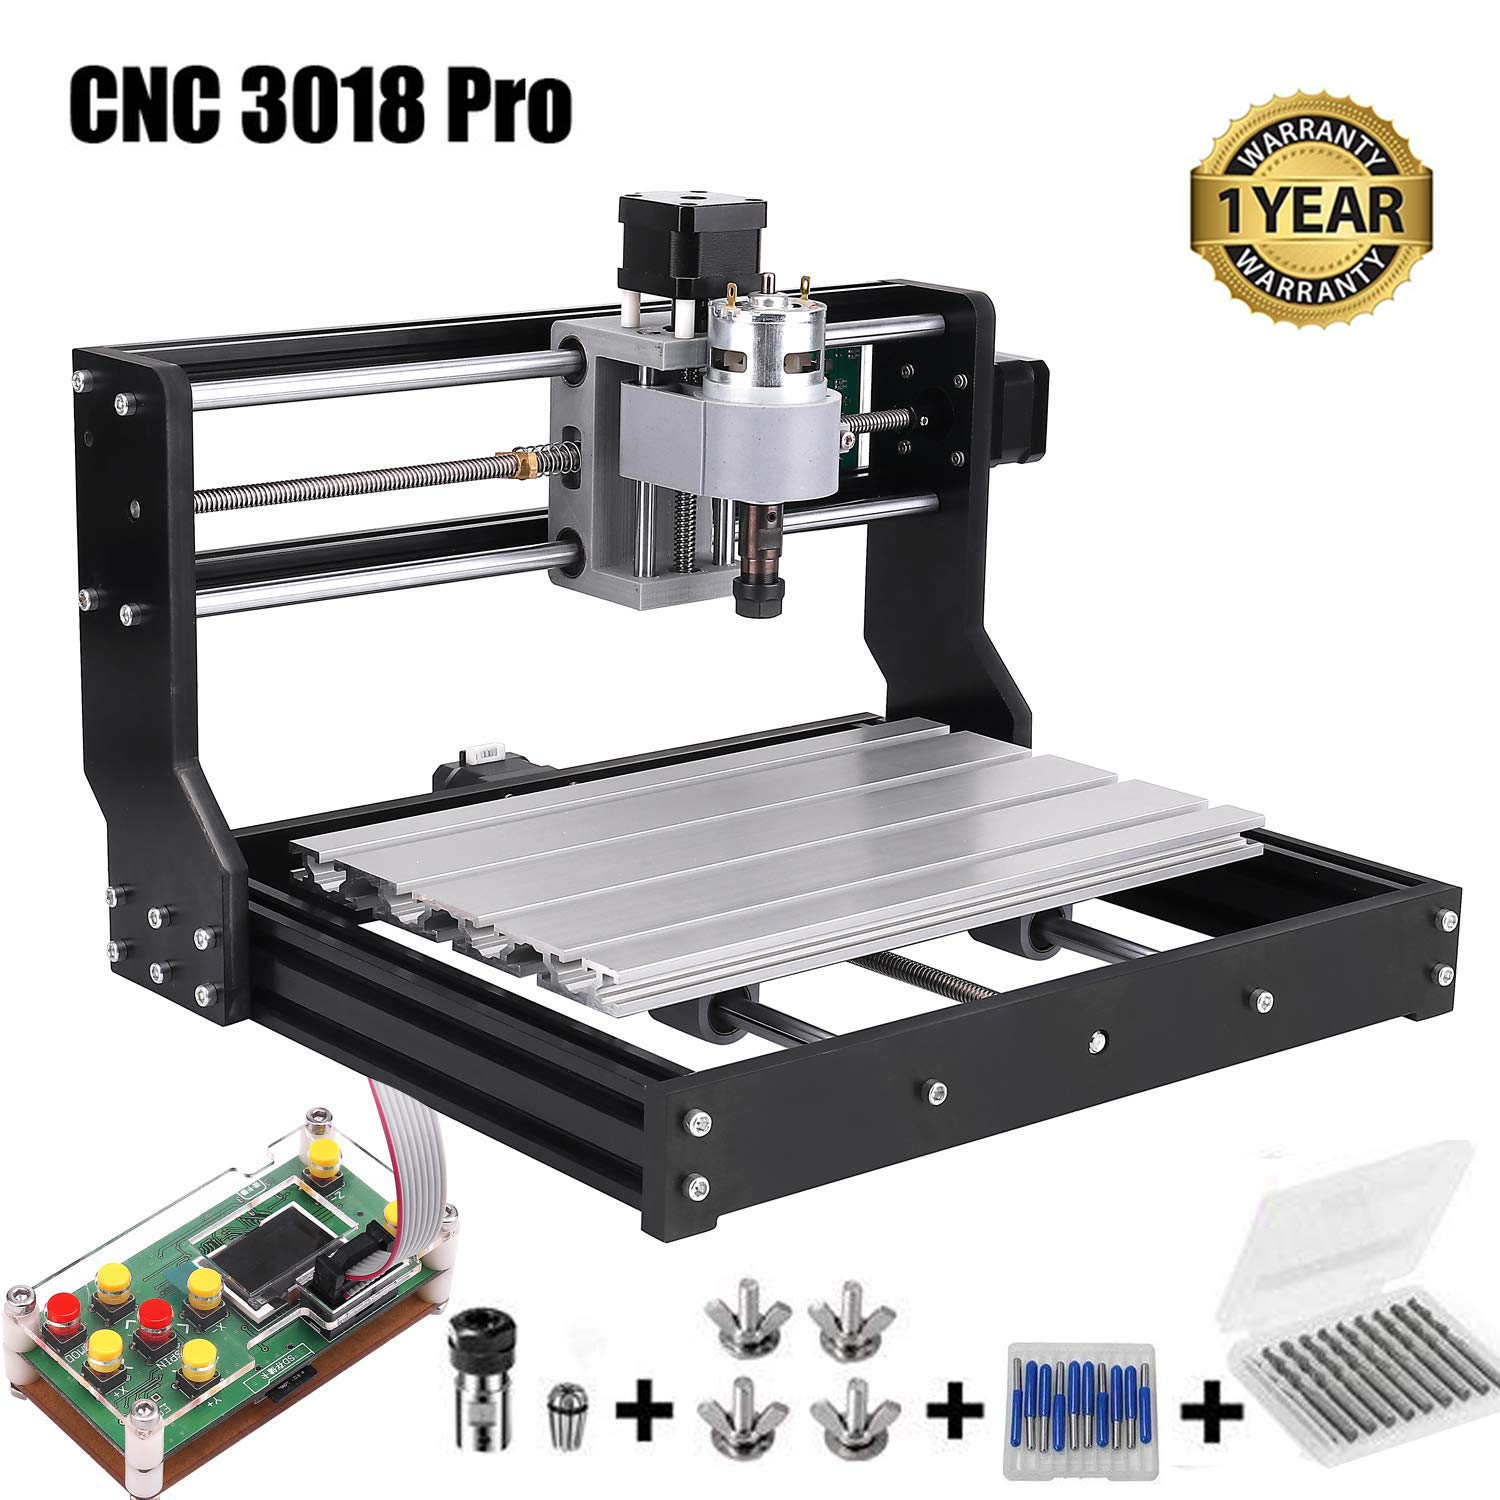 CNC 3018 Pro GRBL Control DIY Mini CNC Machine, 3 Axis PCB Milling Machine, Wood Router Engraver with Offline Controller, with ER11 5mm Extension Rod and 20PCS 3.175MM CNC Router Bits